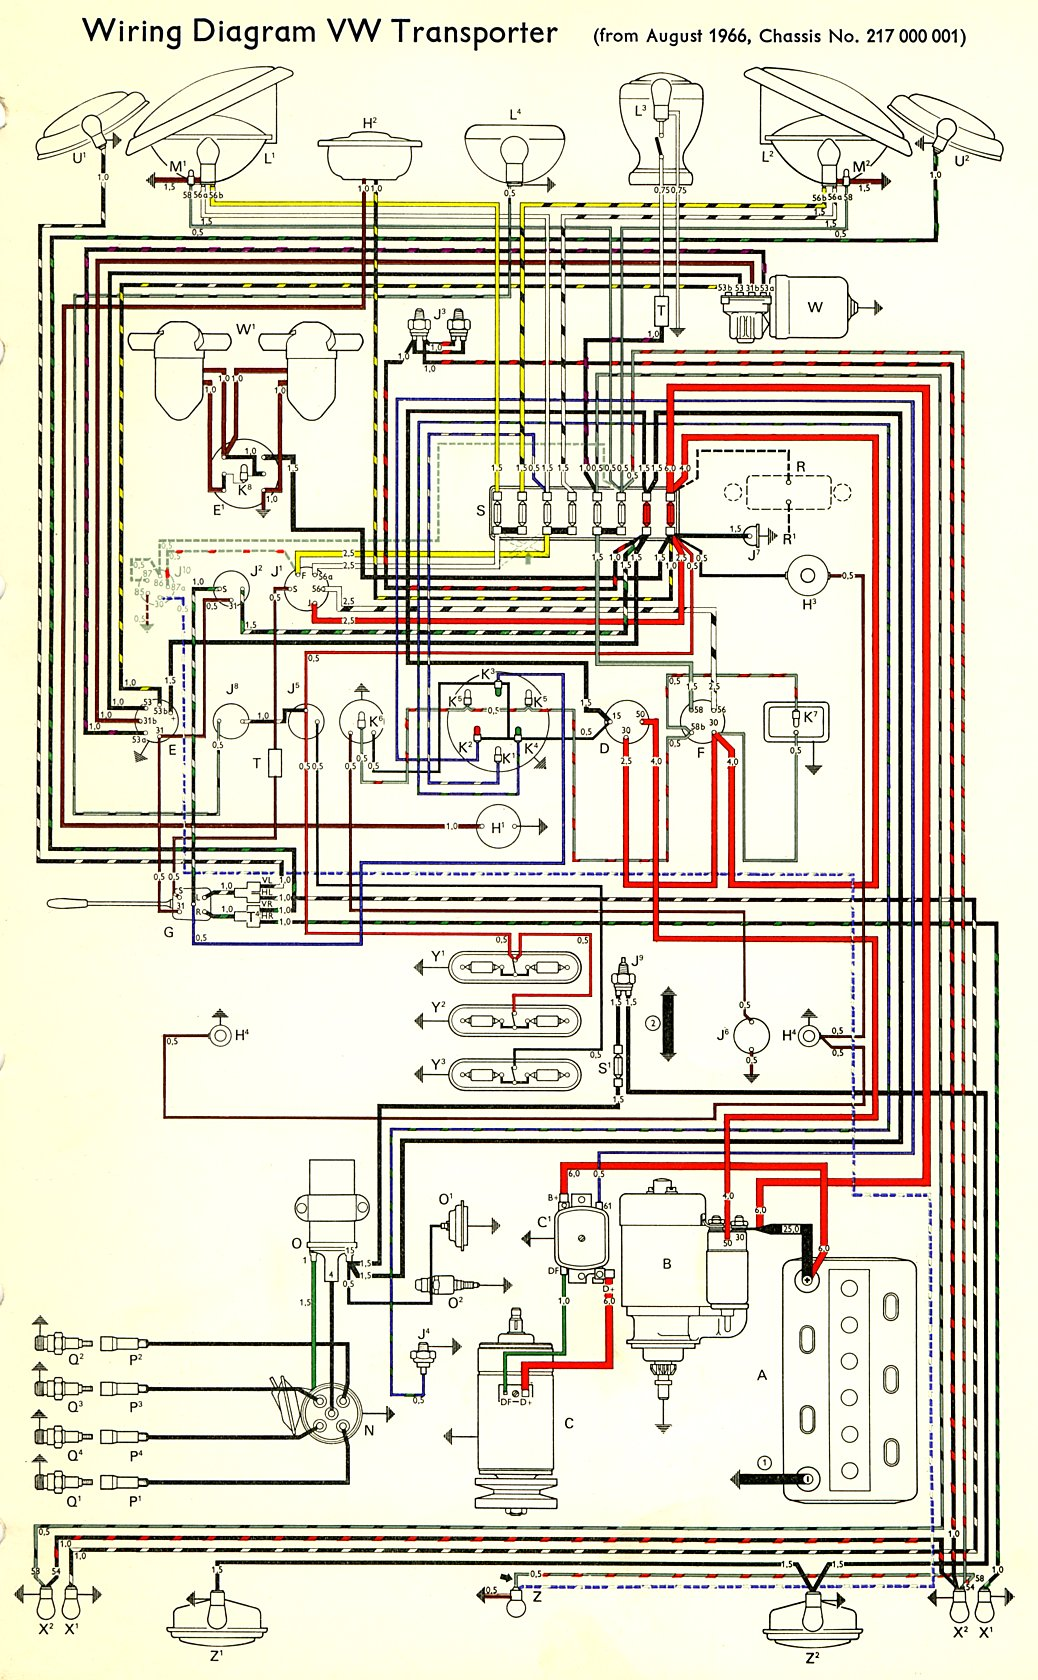 1967 bus wiring diagram thegoldenbug com rh thegoldenbug com 1974 vw bus wiring diagram 1978 vw bus wiring diagram